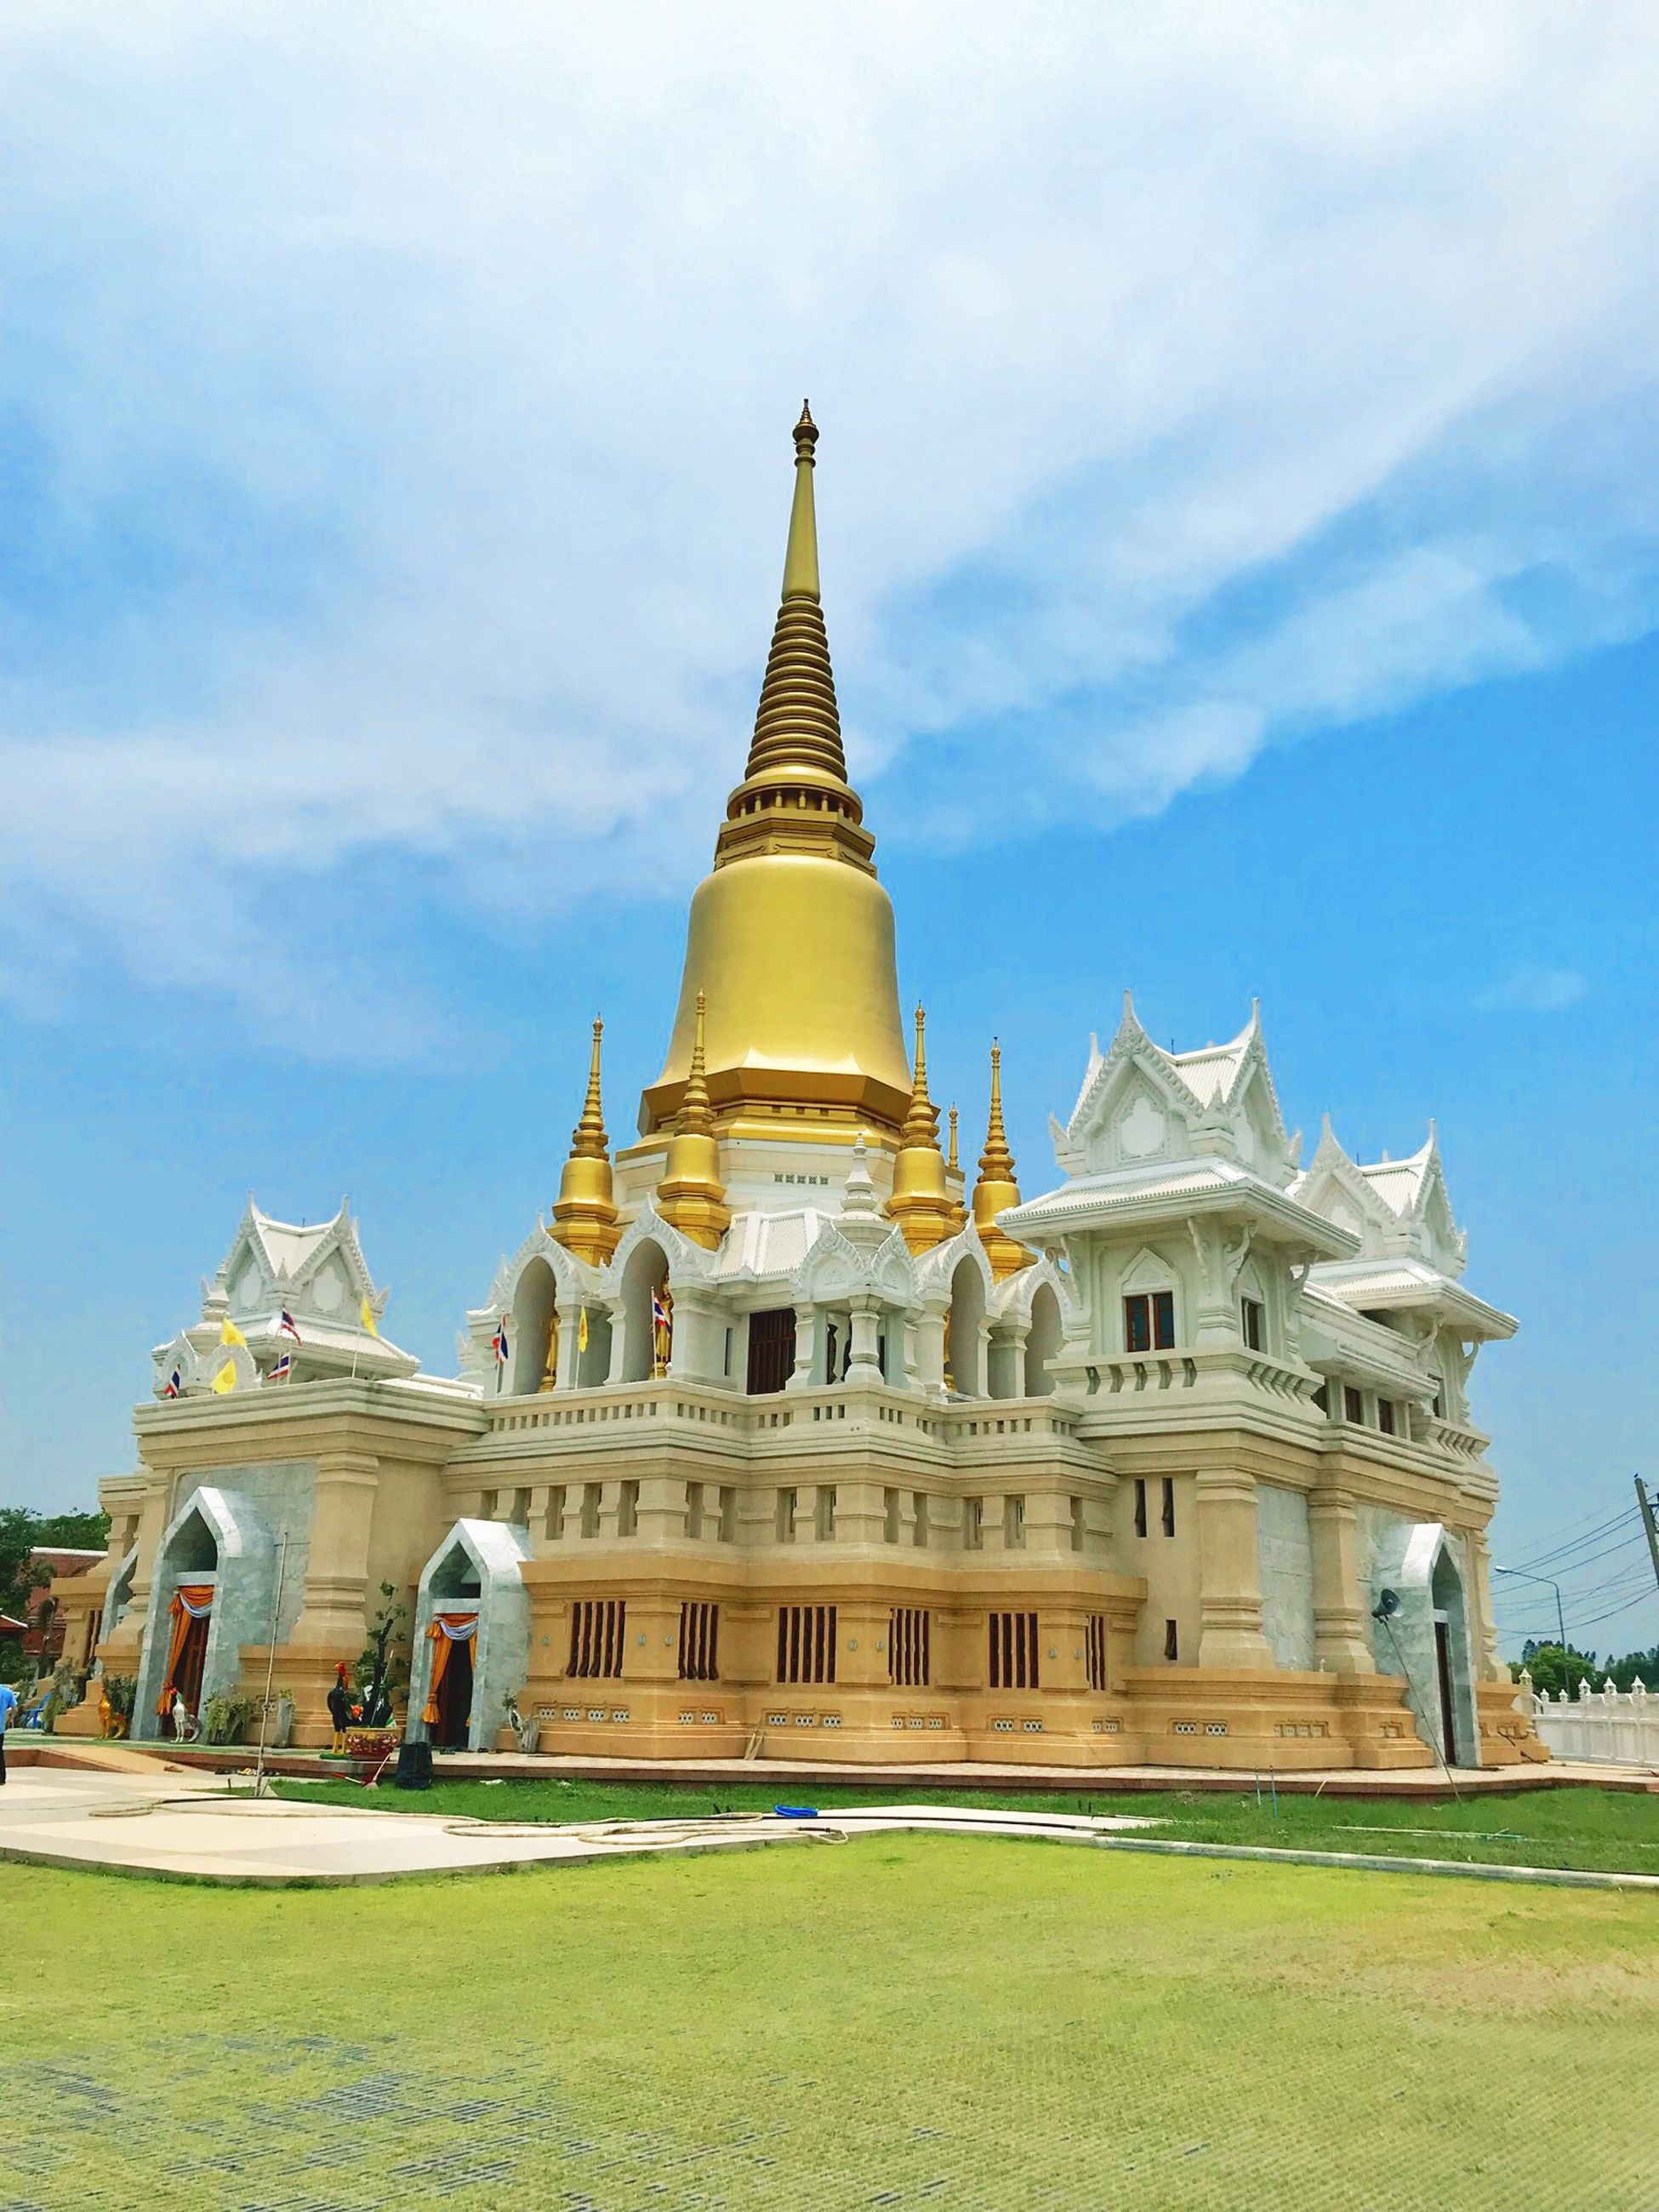 built structure, building exterior, architecture, sky, belief, religion, building, place of worship, grass, cloud - sky, spirituality, travel destinations, no people, gold colored, travel, nature, history, the past, spire, outdoors